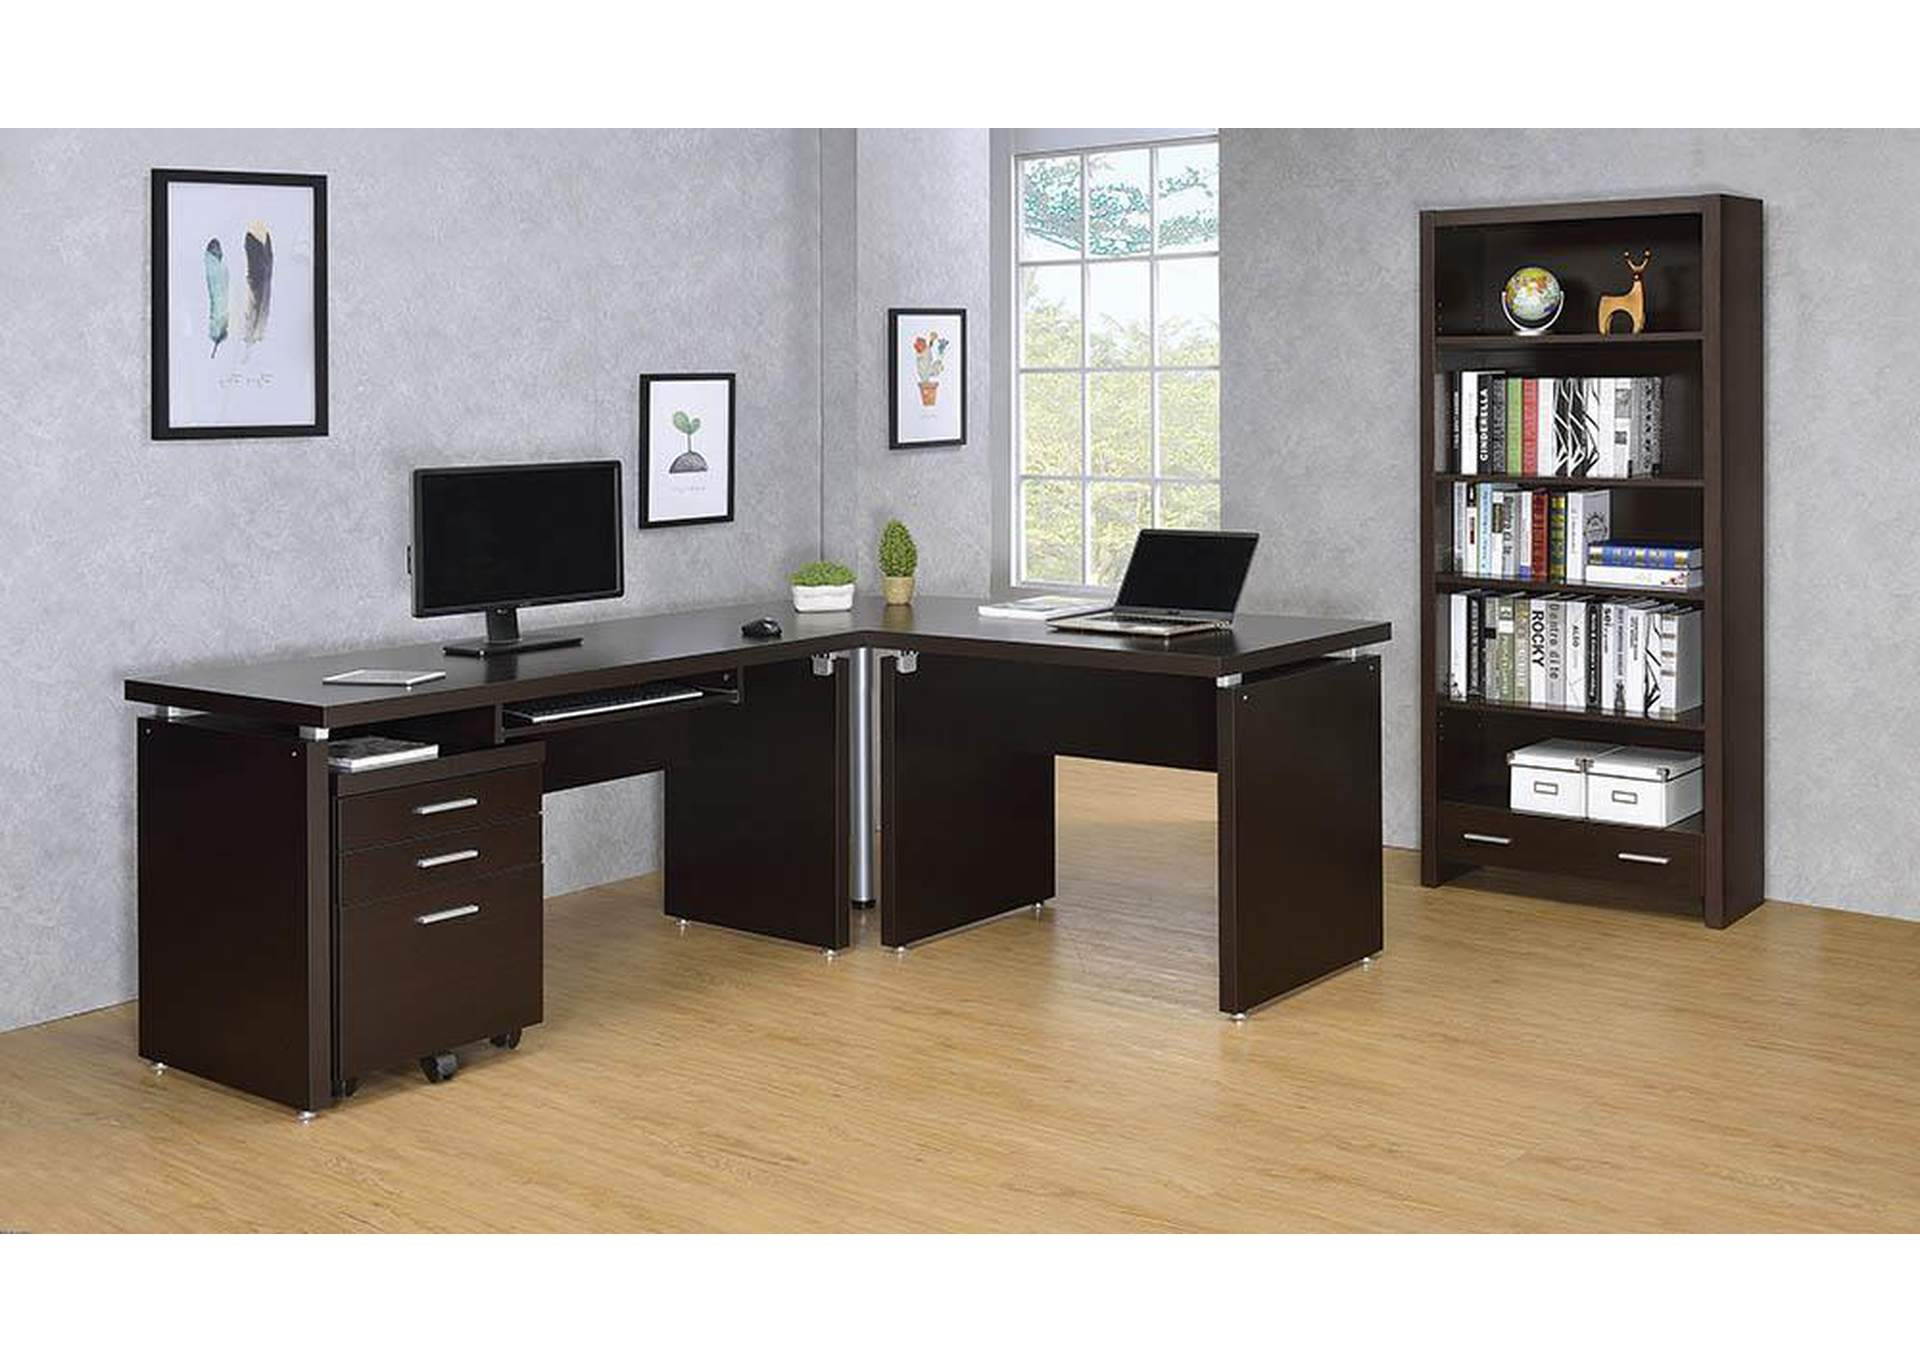 Cappuccino Skylar Contemporary Three-Drawer File Cabinet,Coaster Furniture